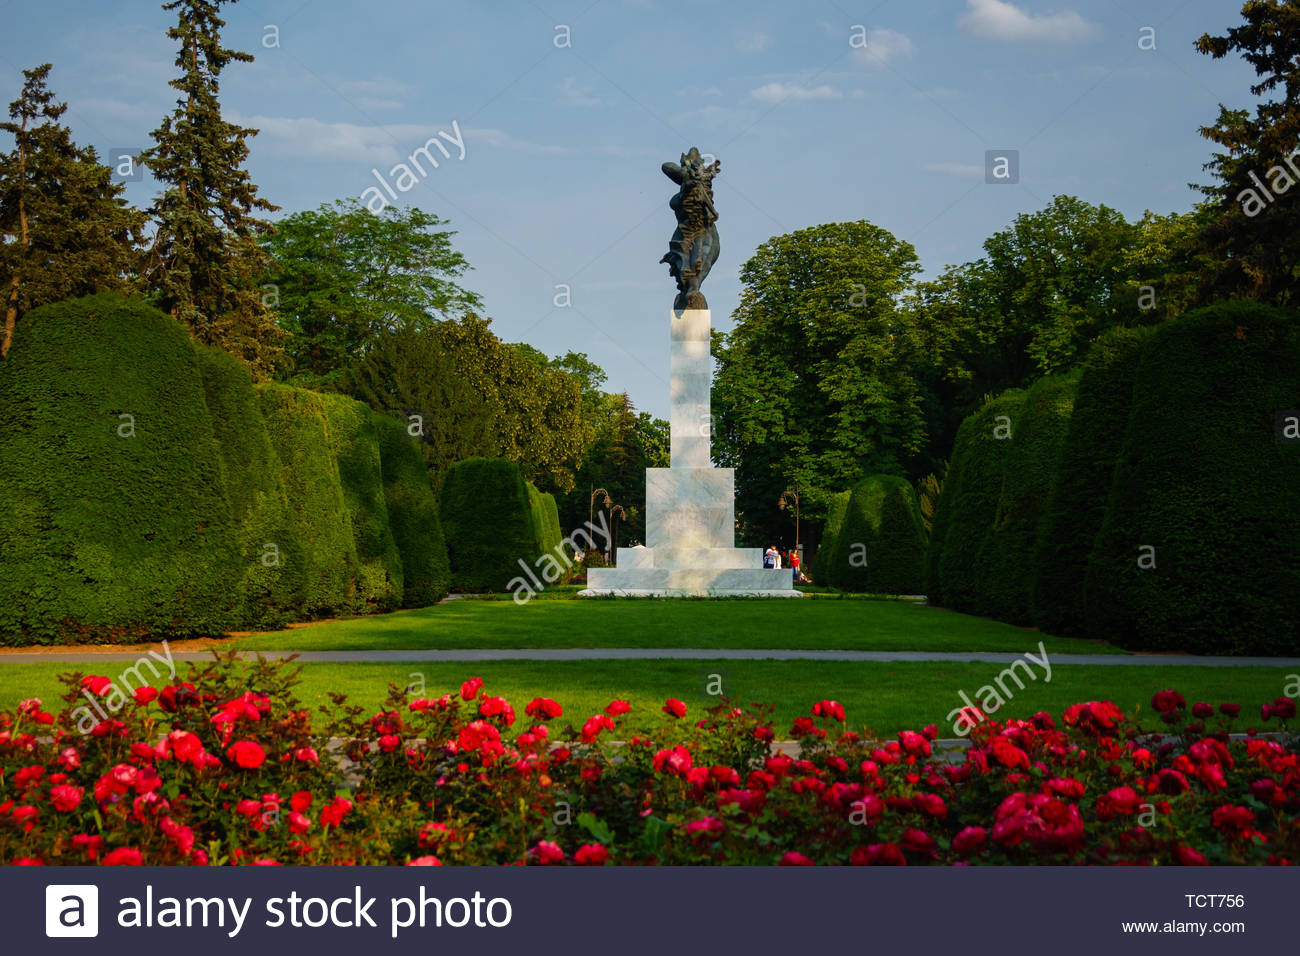 Monument of gratitude to France for the assistance in WW1 at fortress of Belgrade - Stock Image